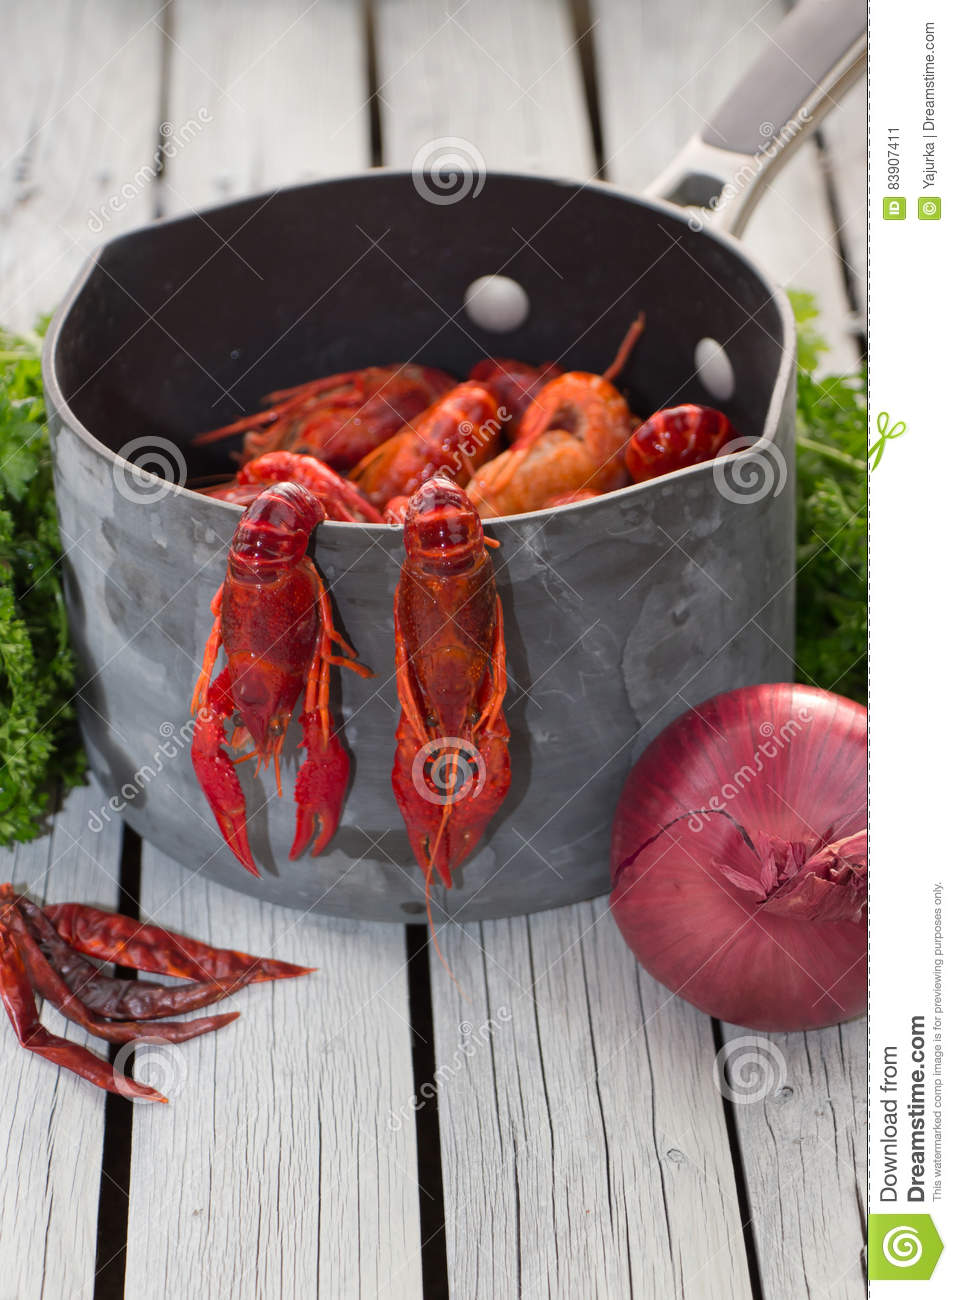 Steamed Crawfish Ready To Eat Boiled Crawfish Woden Background Rustic Style  Steamed Crawfish Ready To Eat